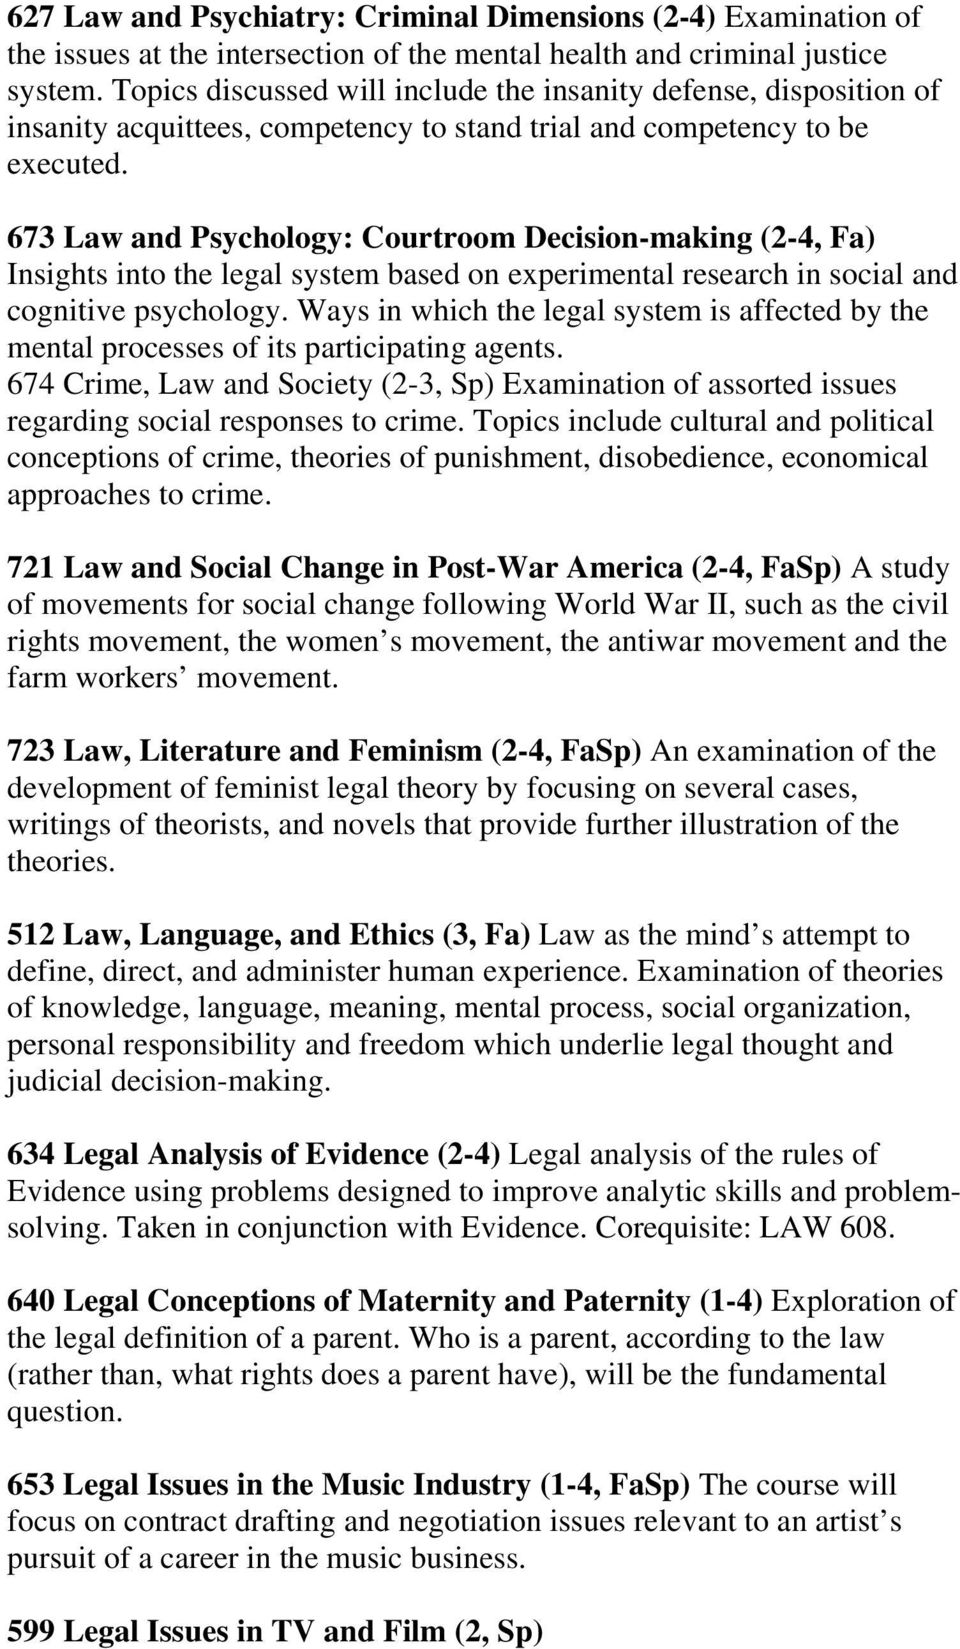 673 Law and Psychology: Courtroom Decision-making (2-4, Fa) Insights into the legal system based on experimental research in social and cognitive psychology.